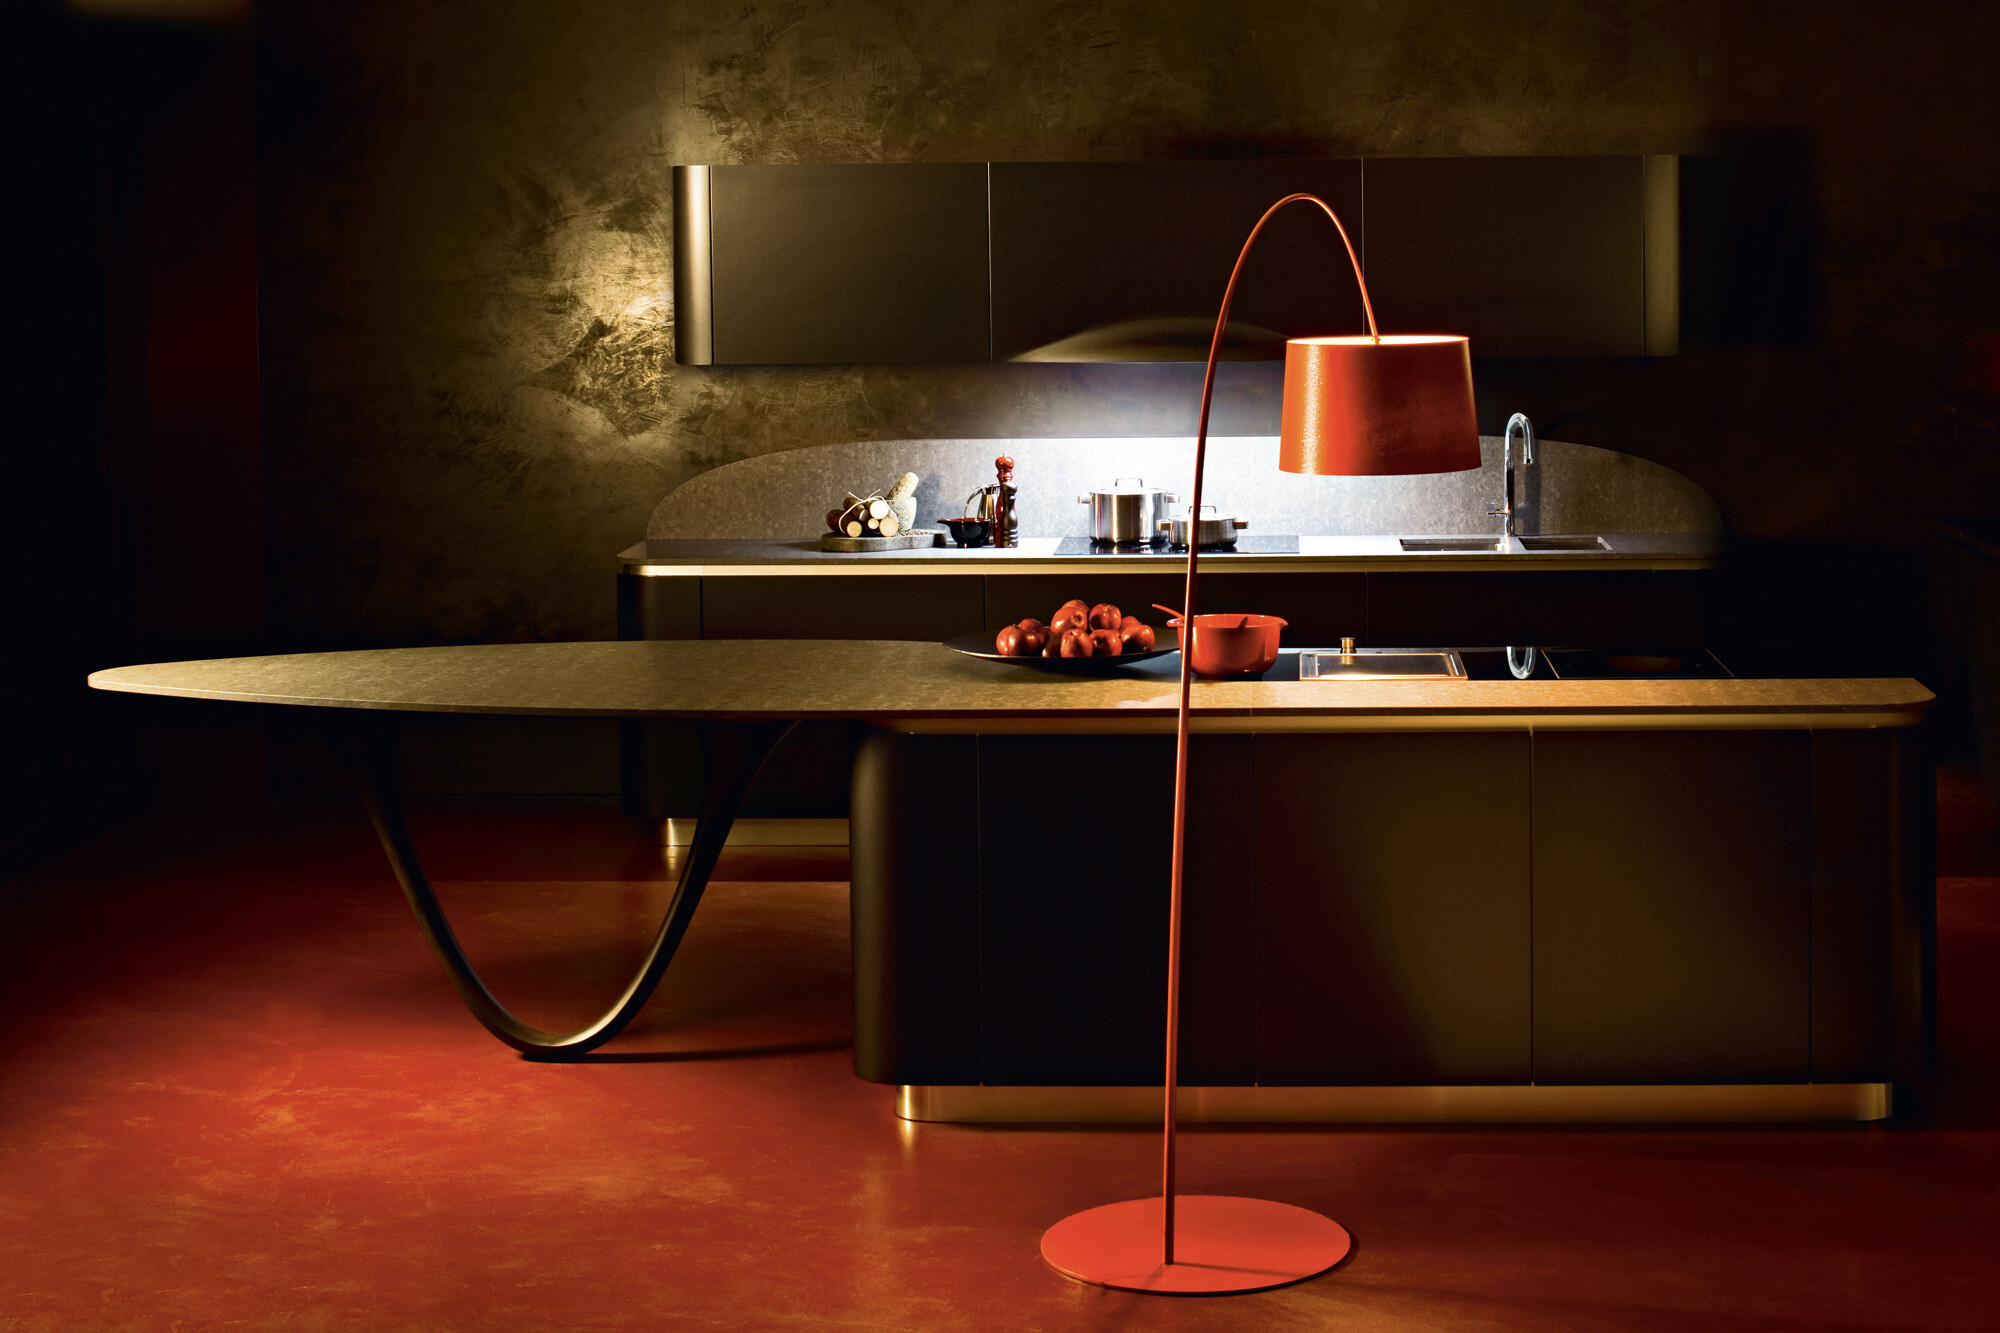 innovative and inspired kitchen